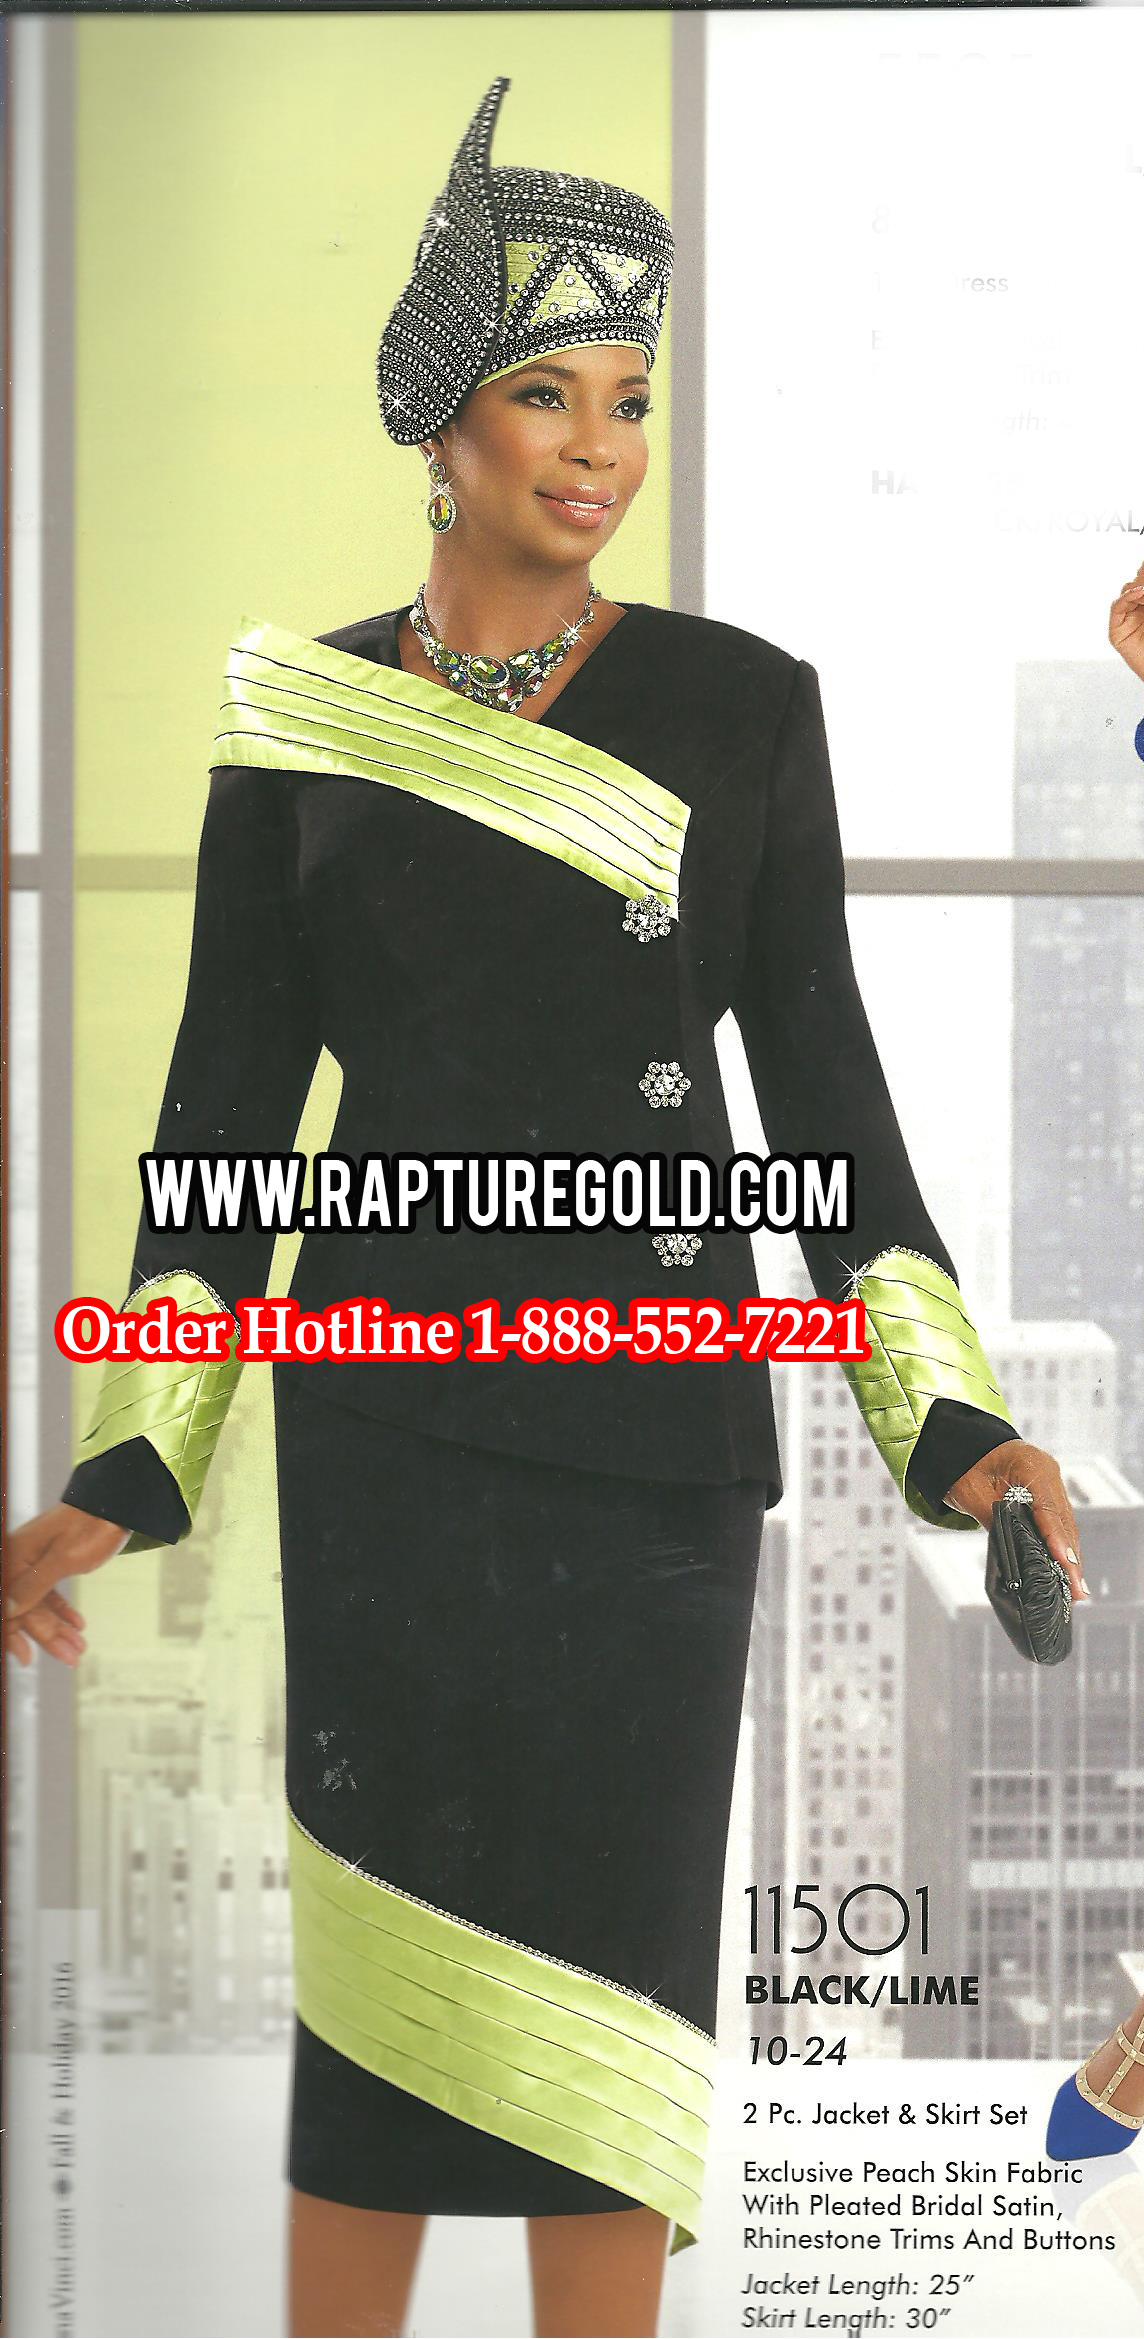 07136991f8d2 Donna Vinci knits, Cogic Church Suits, Sunday Top Of The Line Womens, Ben  Marc, Champagne Elite, Designer Women's Dresses, Fashions, Elegant First  Lady's ...